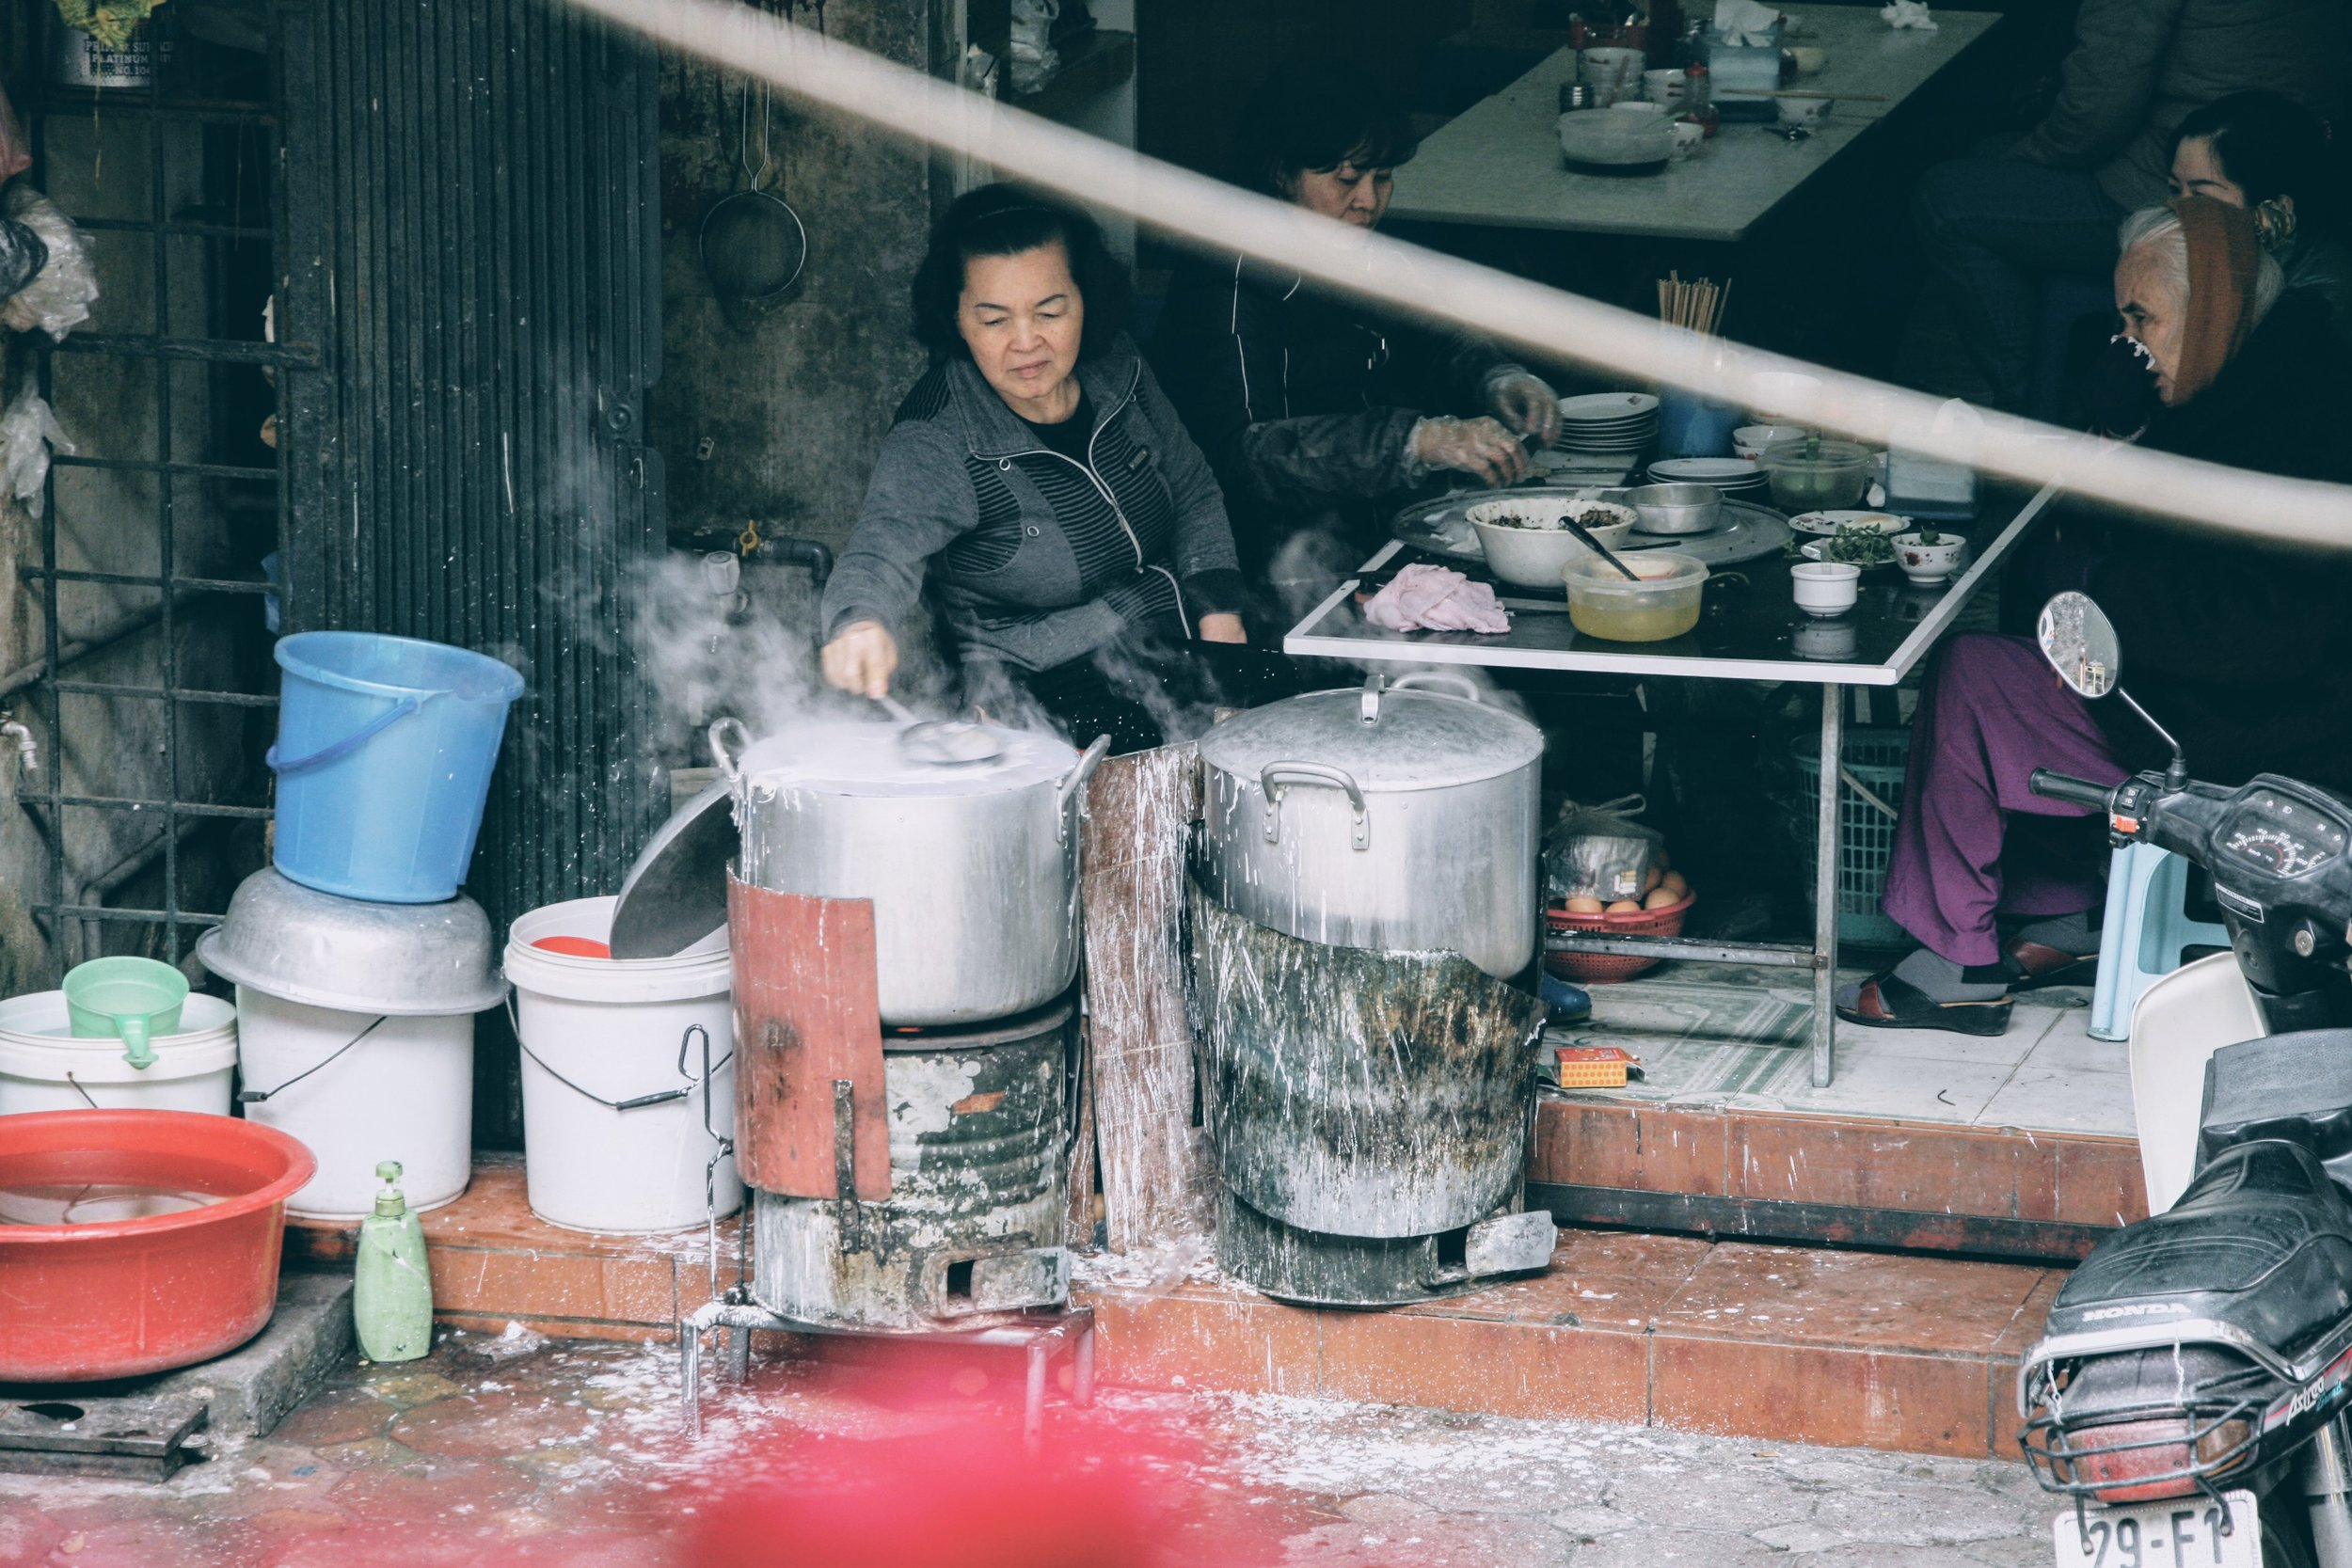 Ladling each scoop of the rice flour-based batter onto the steamer, covering it with a lid for a matter of seconds, then carefully transferred the gossamer-thin sheets with a bamboo stick onto a tray to be filled with minced mushrooms and pork